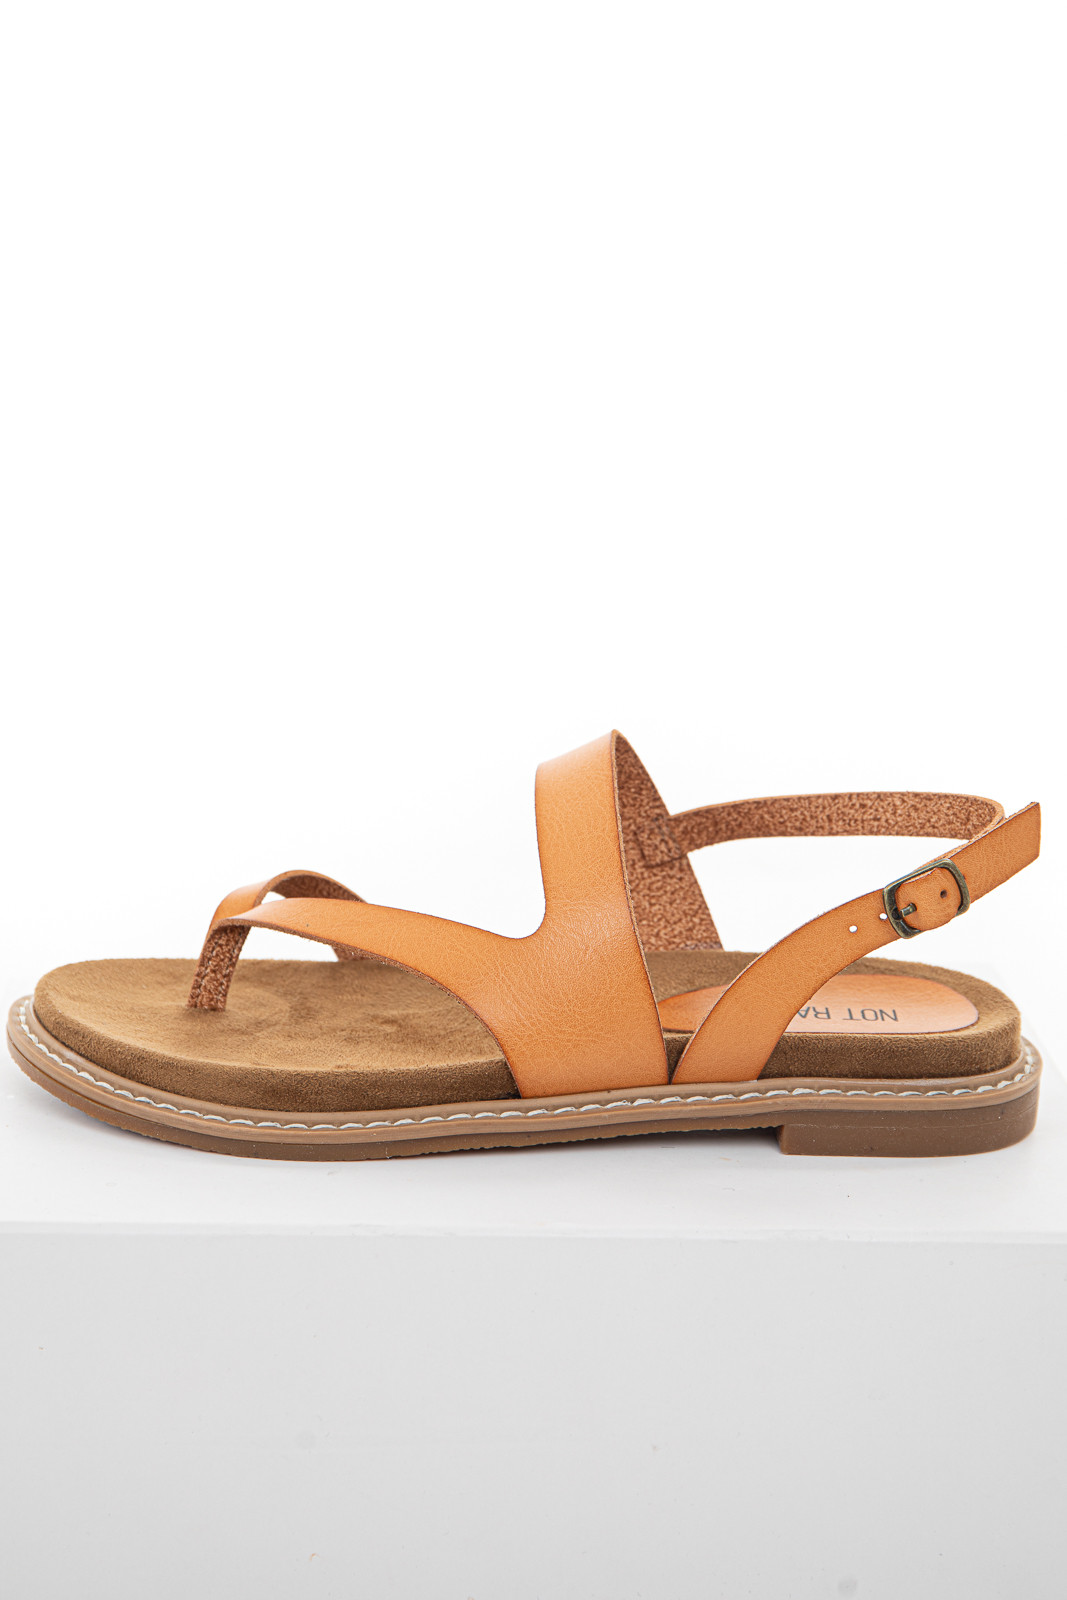 Light Walnut Strappy Thong Sandal with Gold Buckle Closure